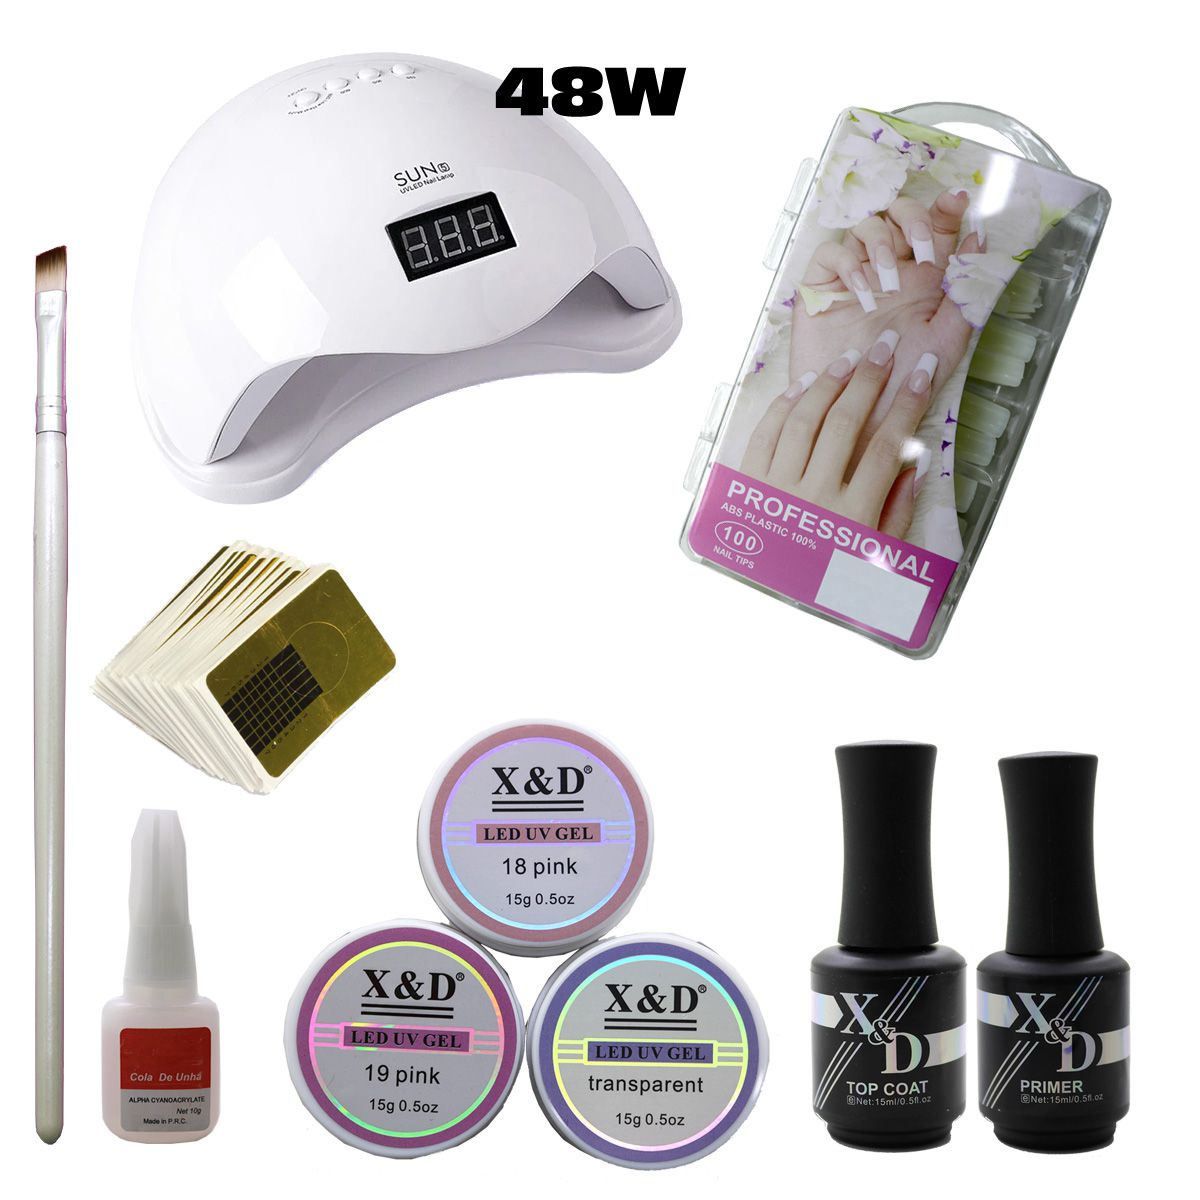 Kit Unha Gel Acrigel Led UV Sun 5 48W Top Coat Primer 581XD